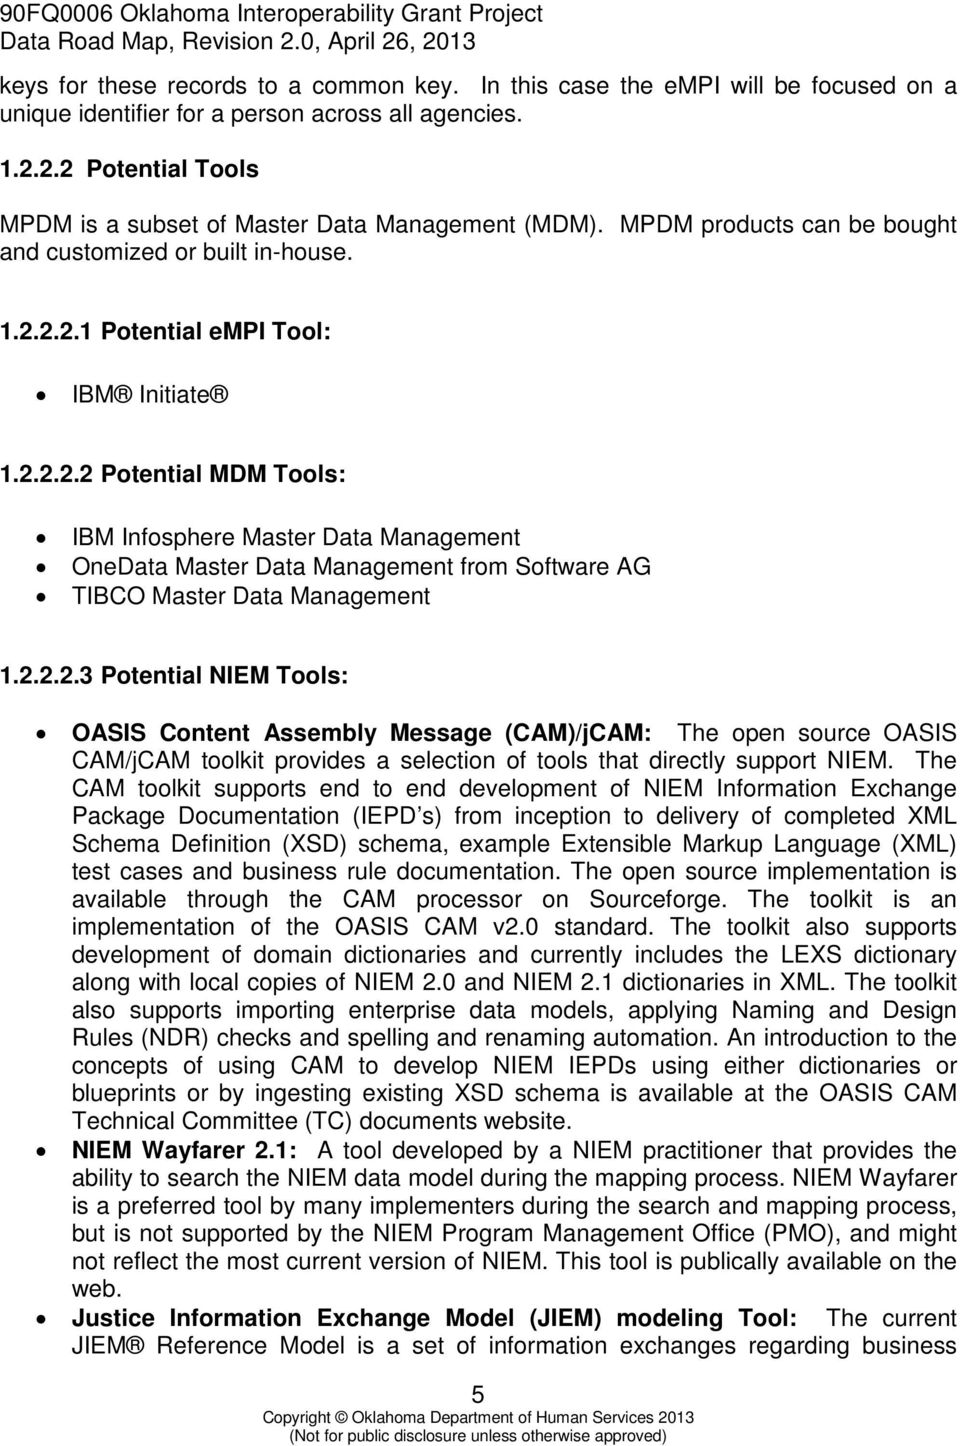 2.2.2.3 Potential NIEM Tools: OASIS Content Assembly Message (CAM)/jCAM: The open source OASIS CAM/jCAM toolkit provides a selection of tools that directly support NIEM.